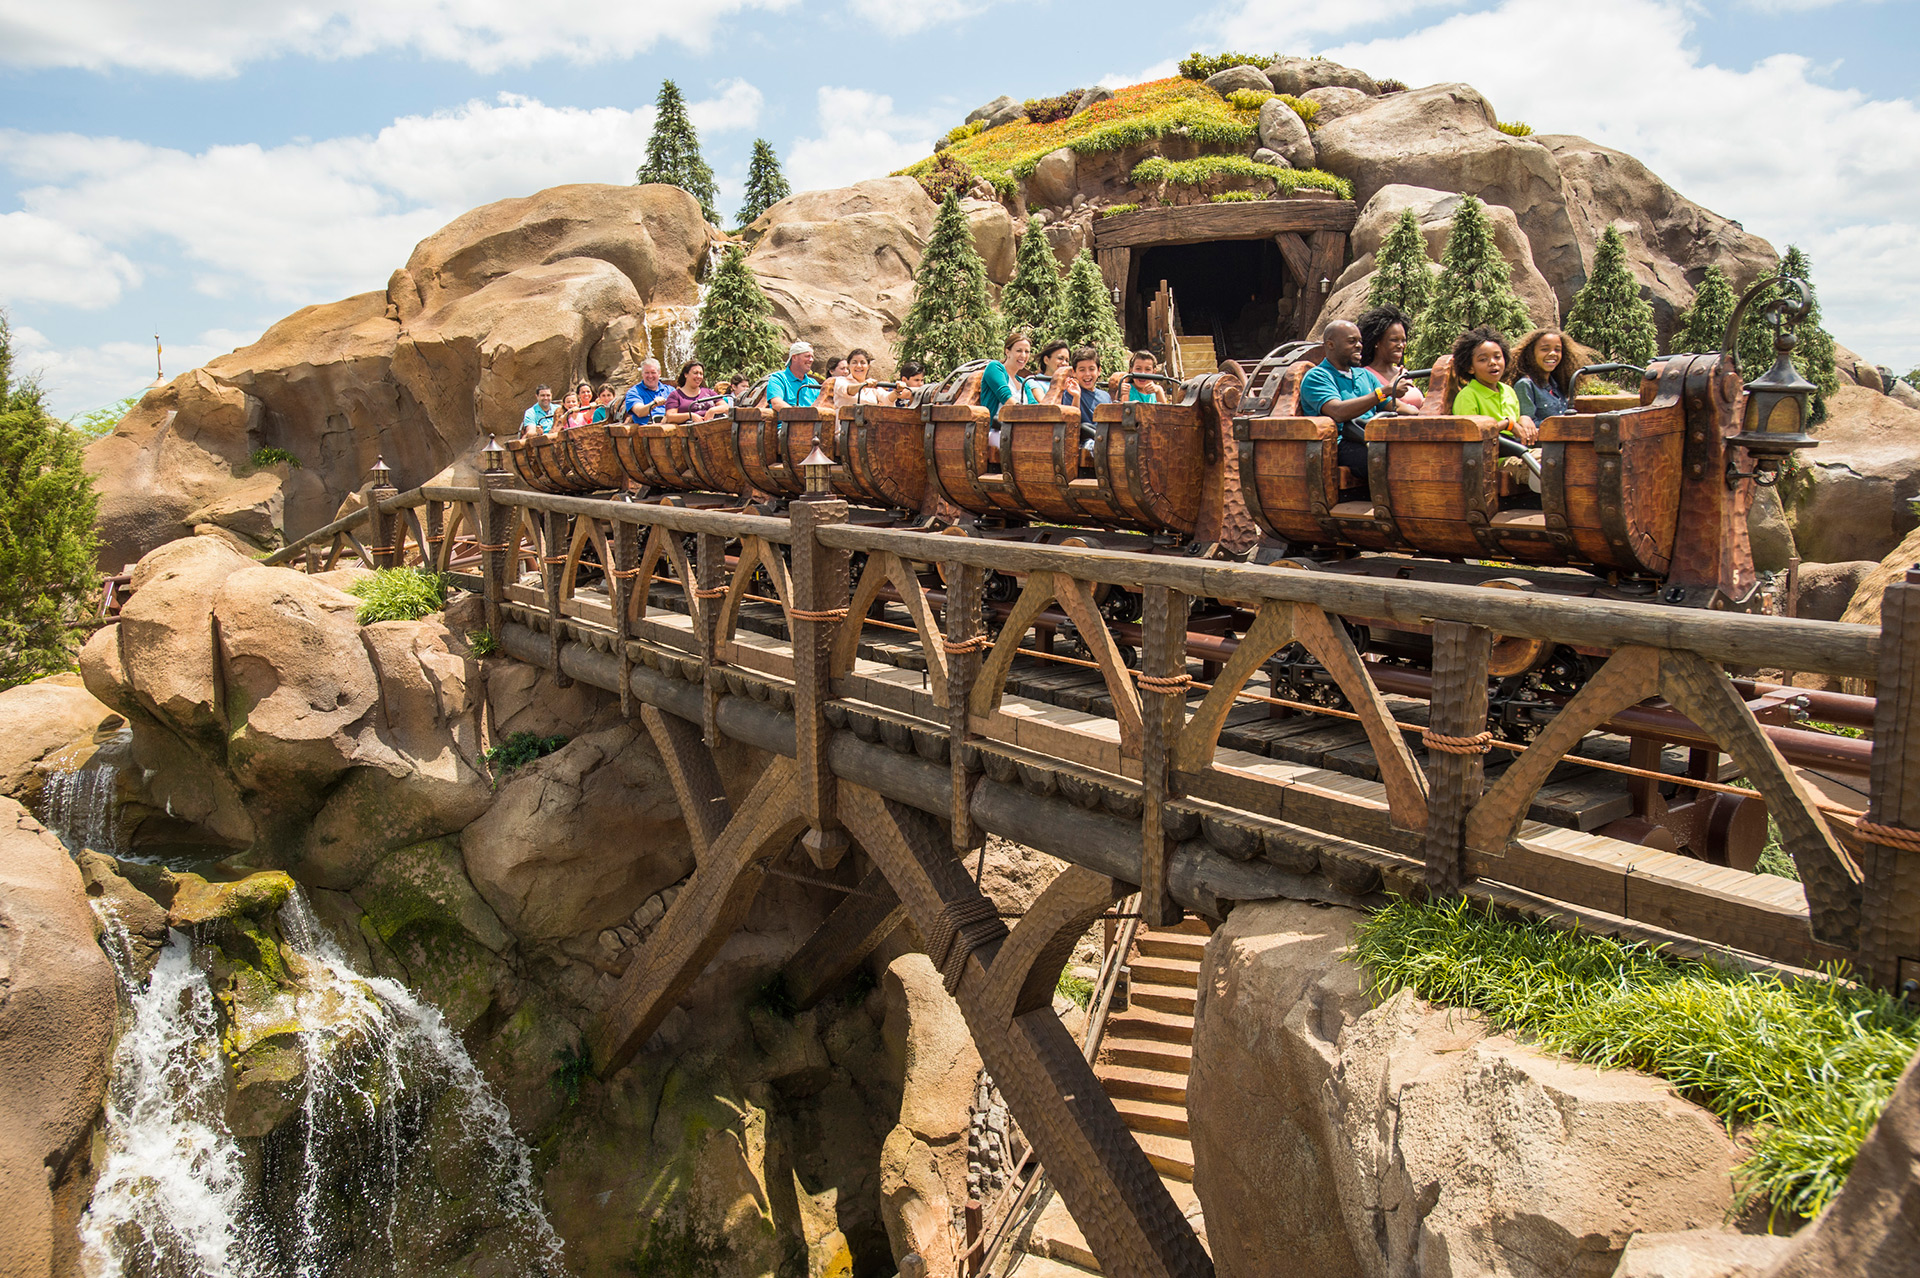 Seven Dwarfs Mine Train in Disney World Florida